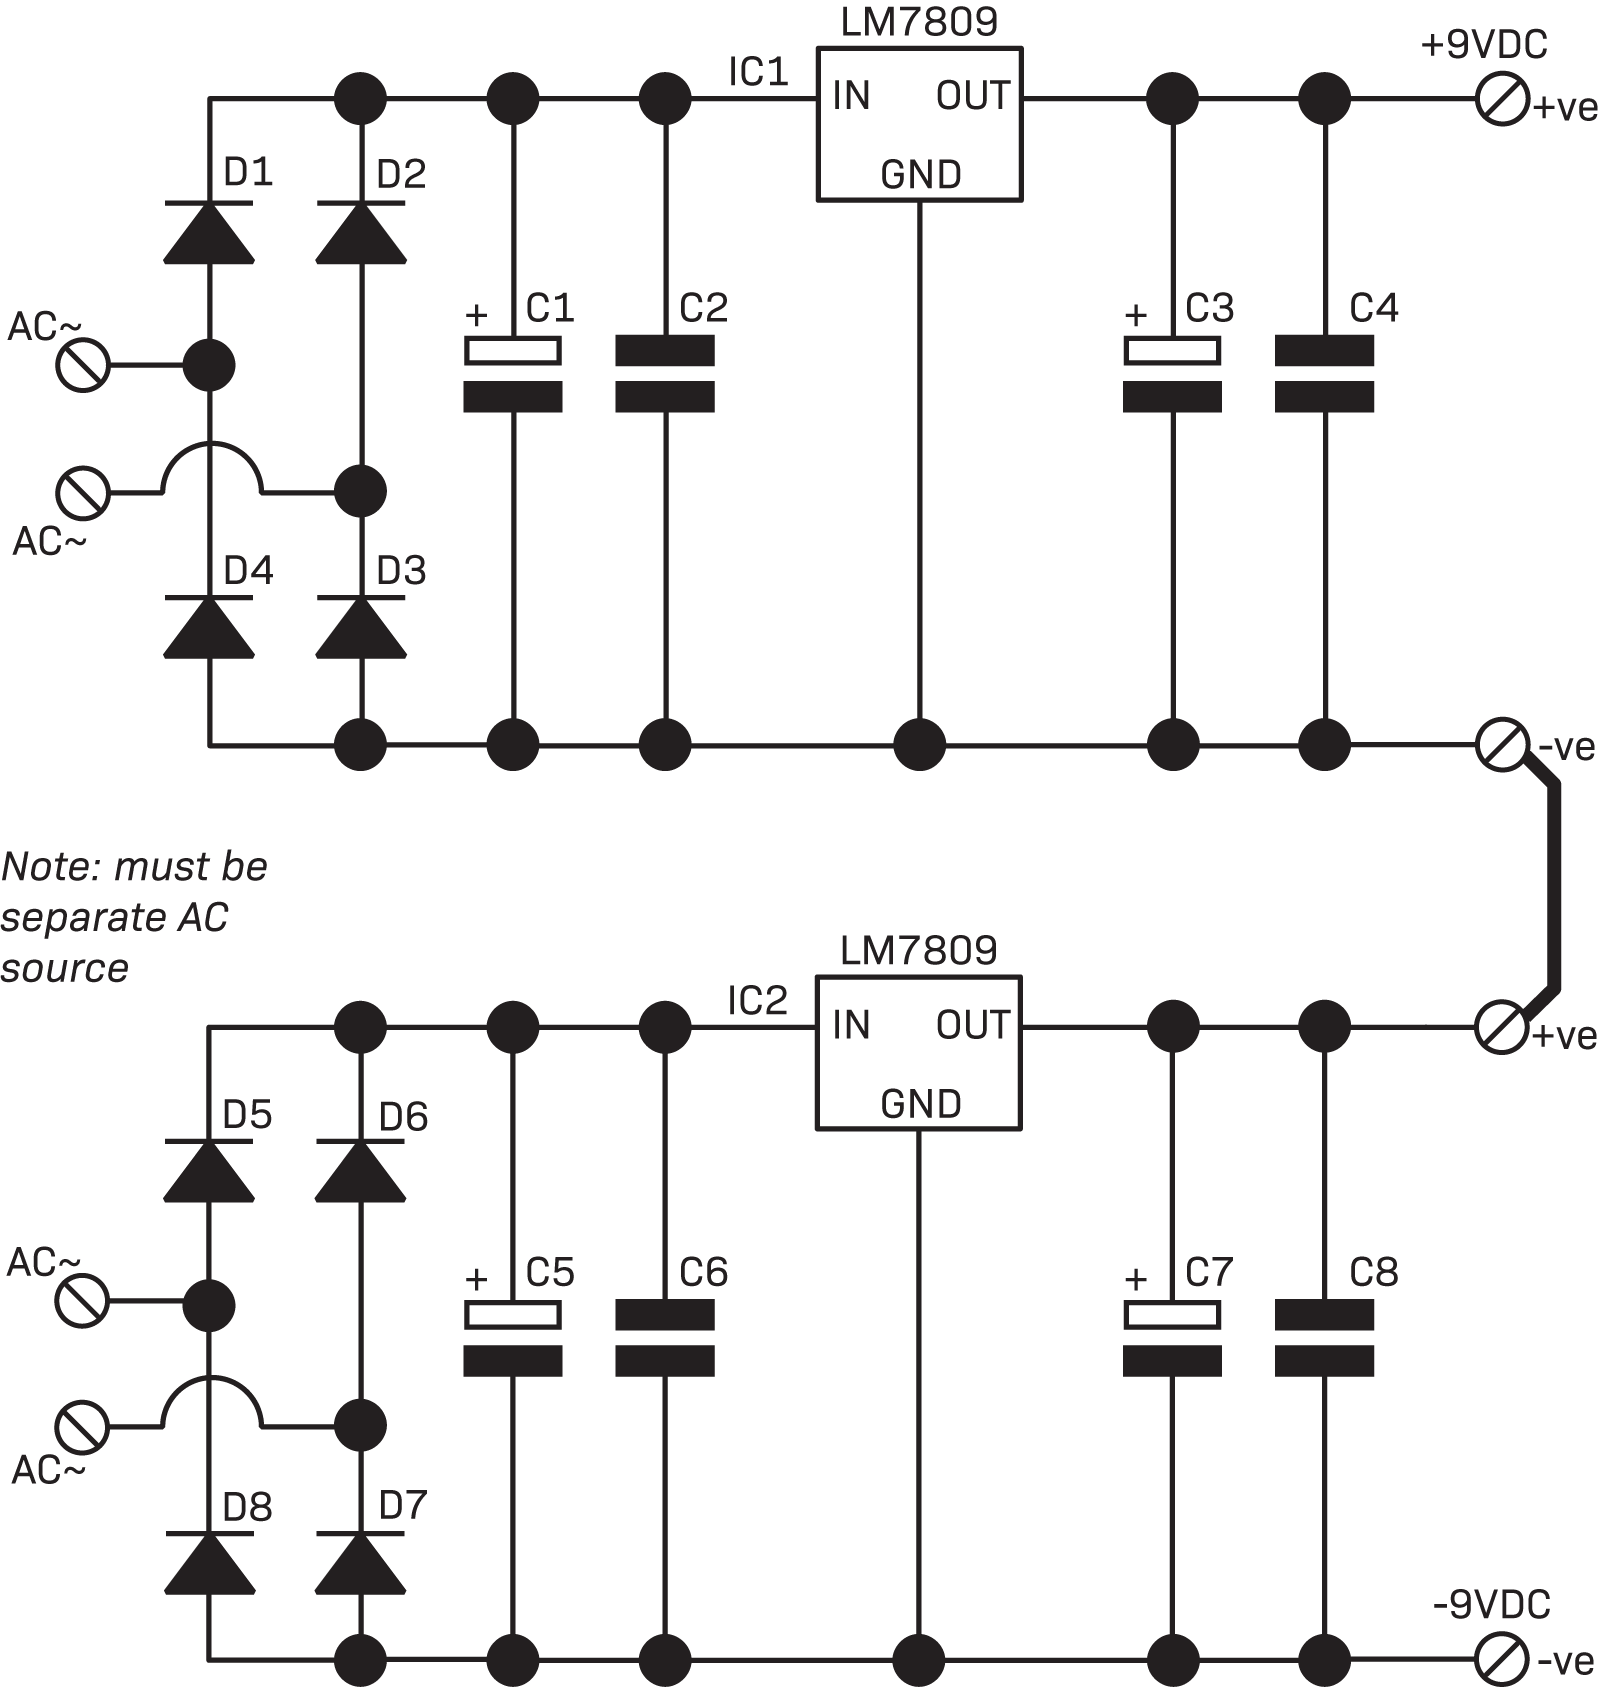 Part 3 The Linear Power Supply Diyode Magazine 24v Dual Regulated Circuit Diagram Supplies Connected Together